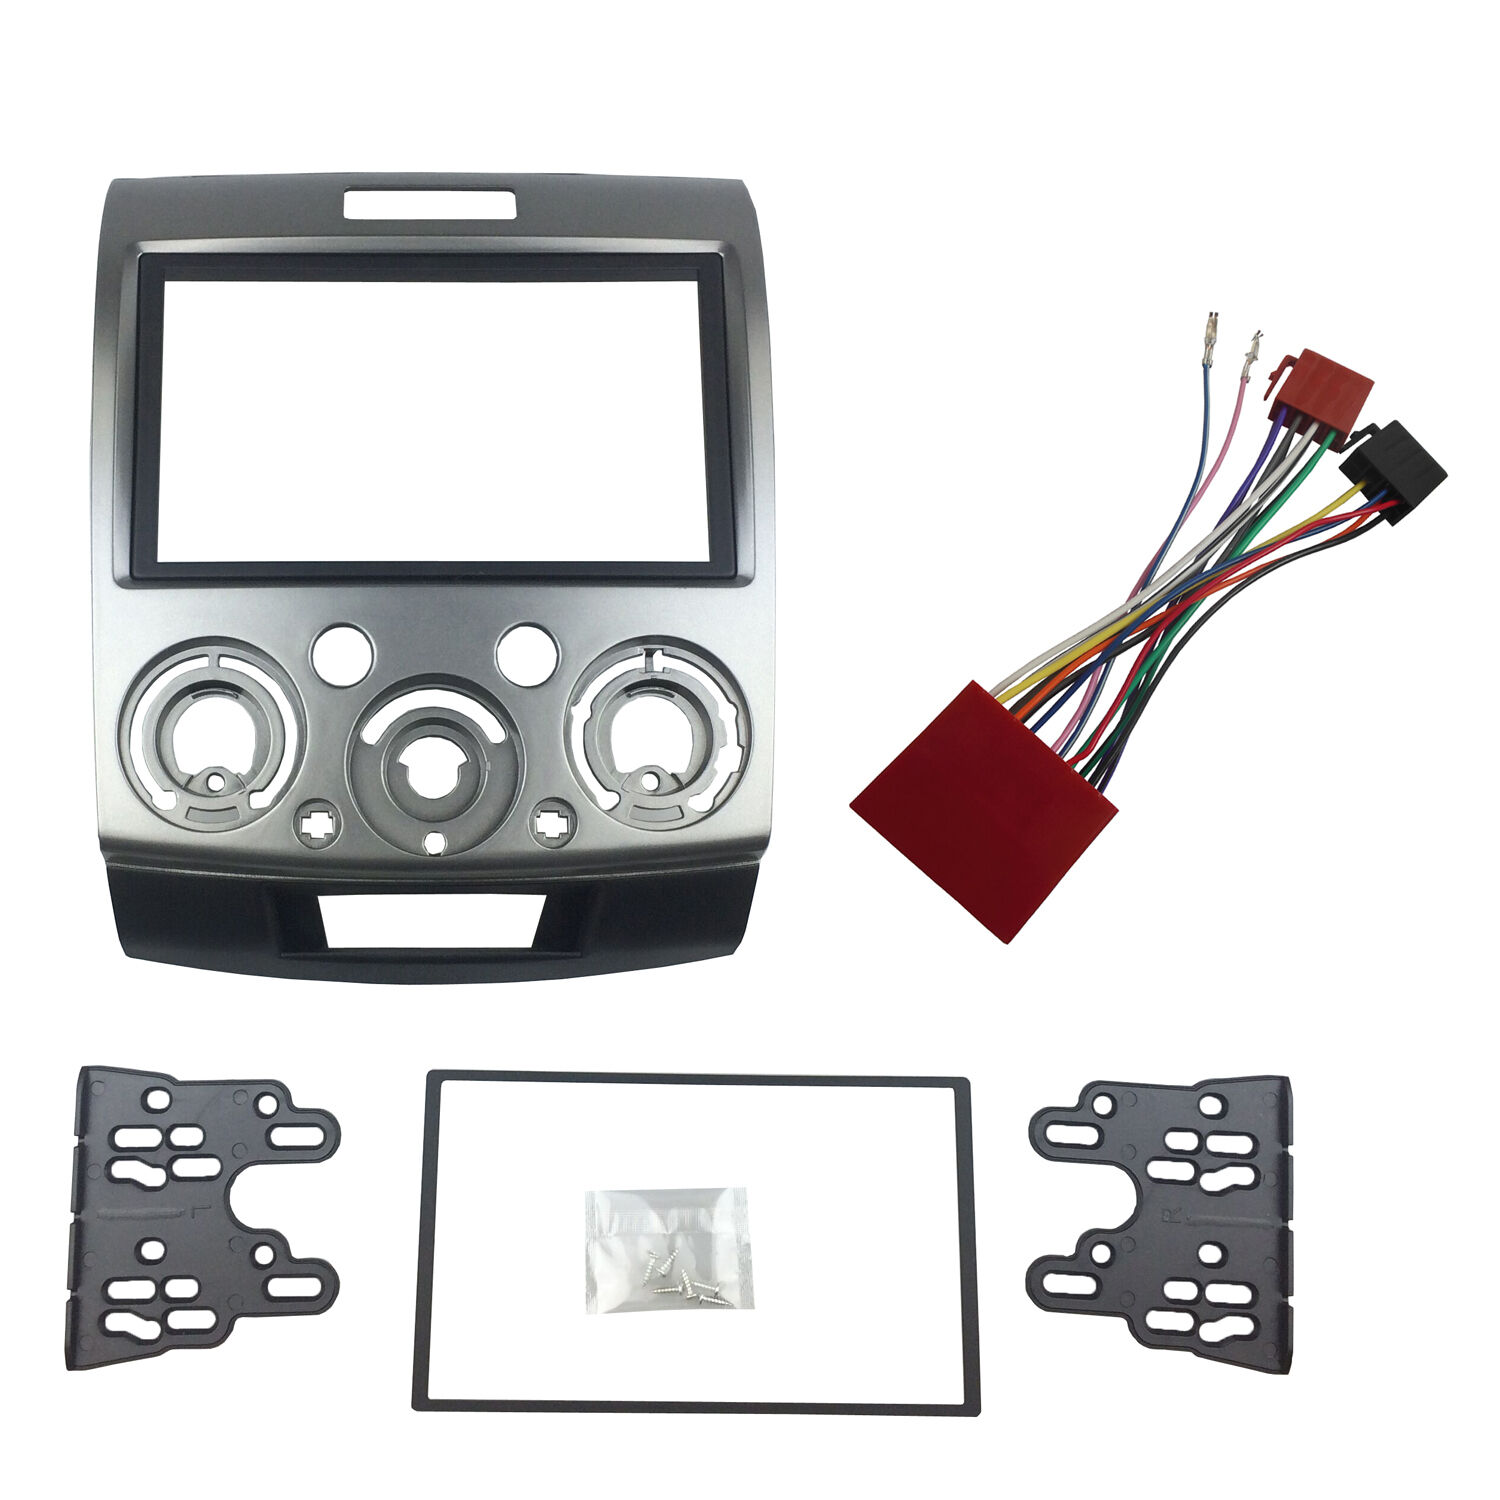 2 Din Stereo Panel for Ford Everest Ranger MAZDA BT-50 With ISO Wiring  Harness | eBayeBay